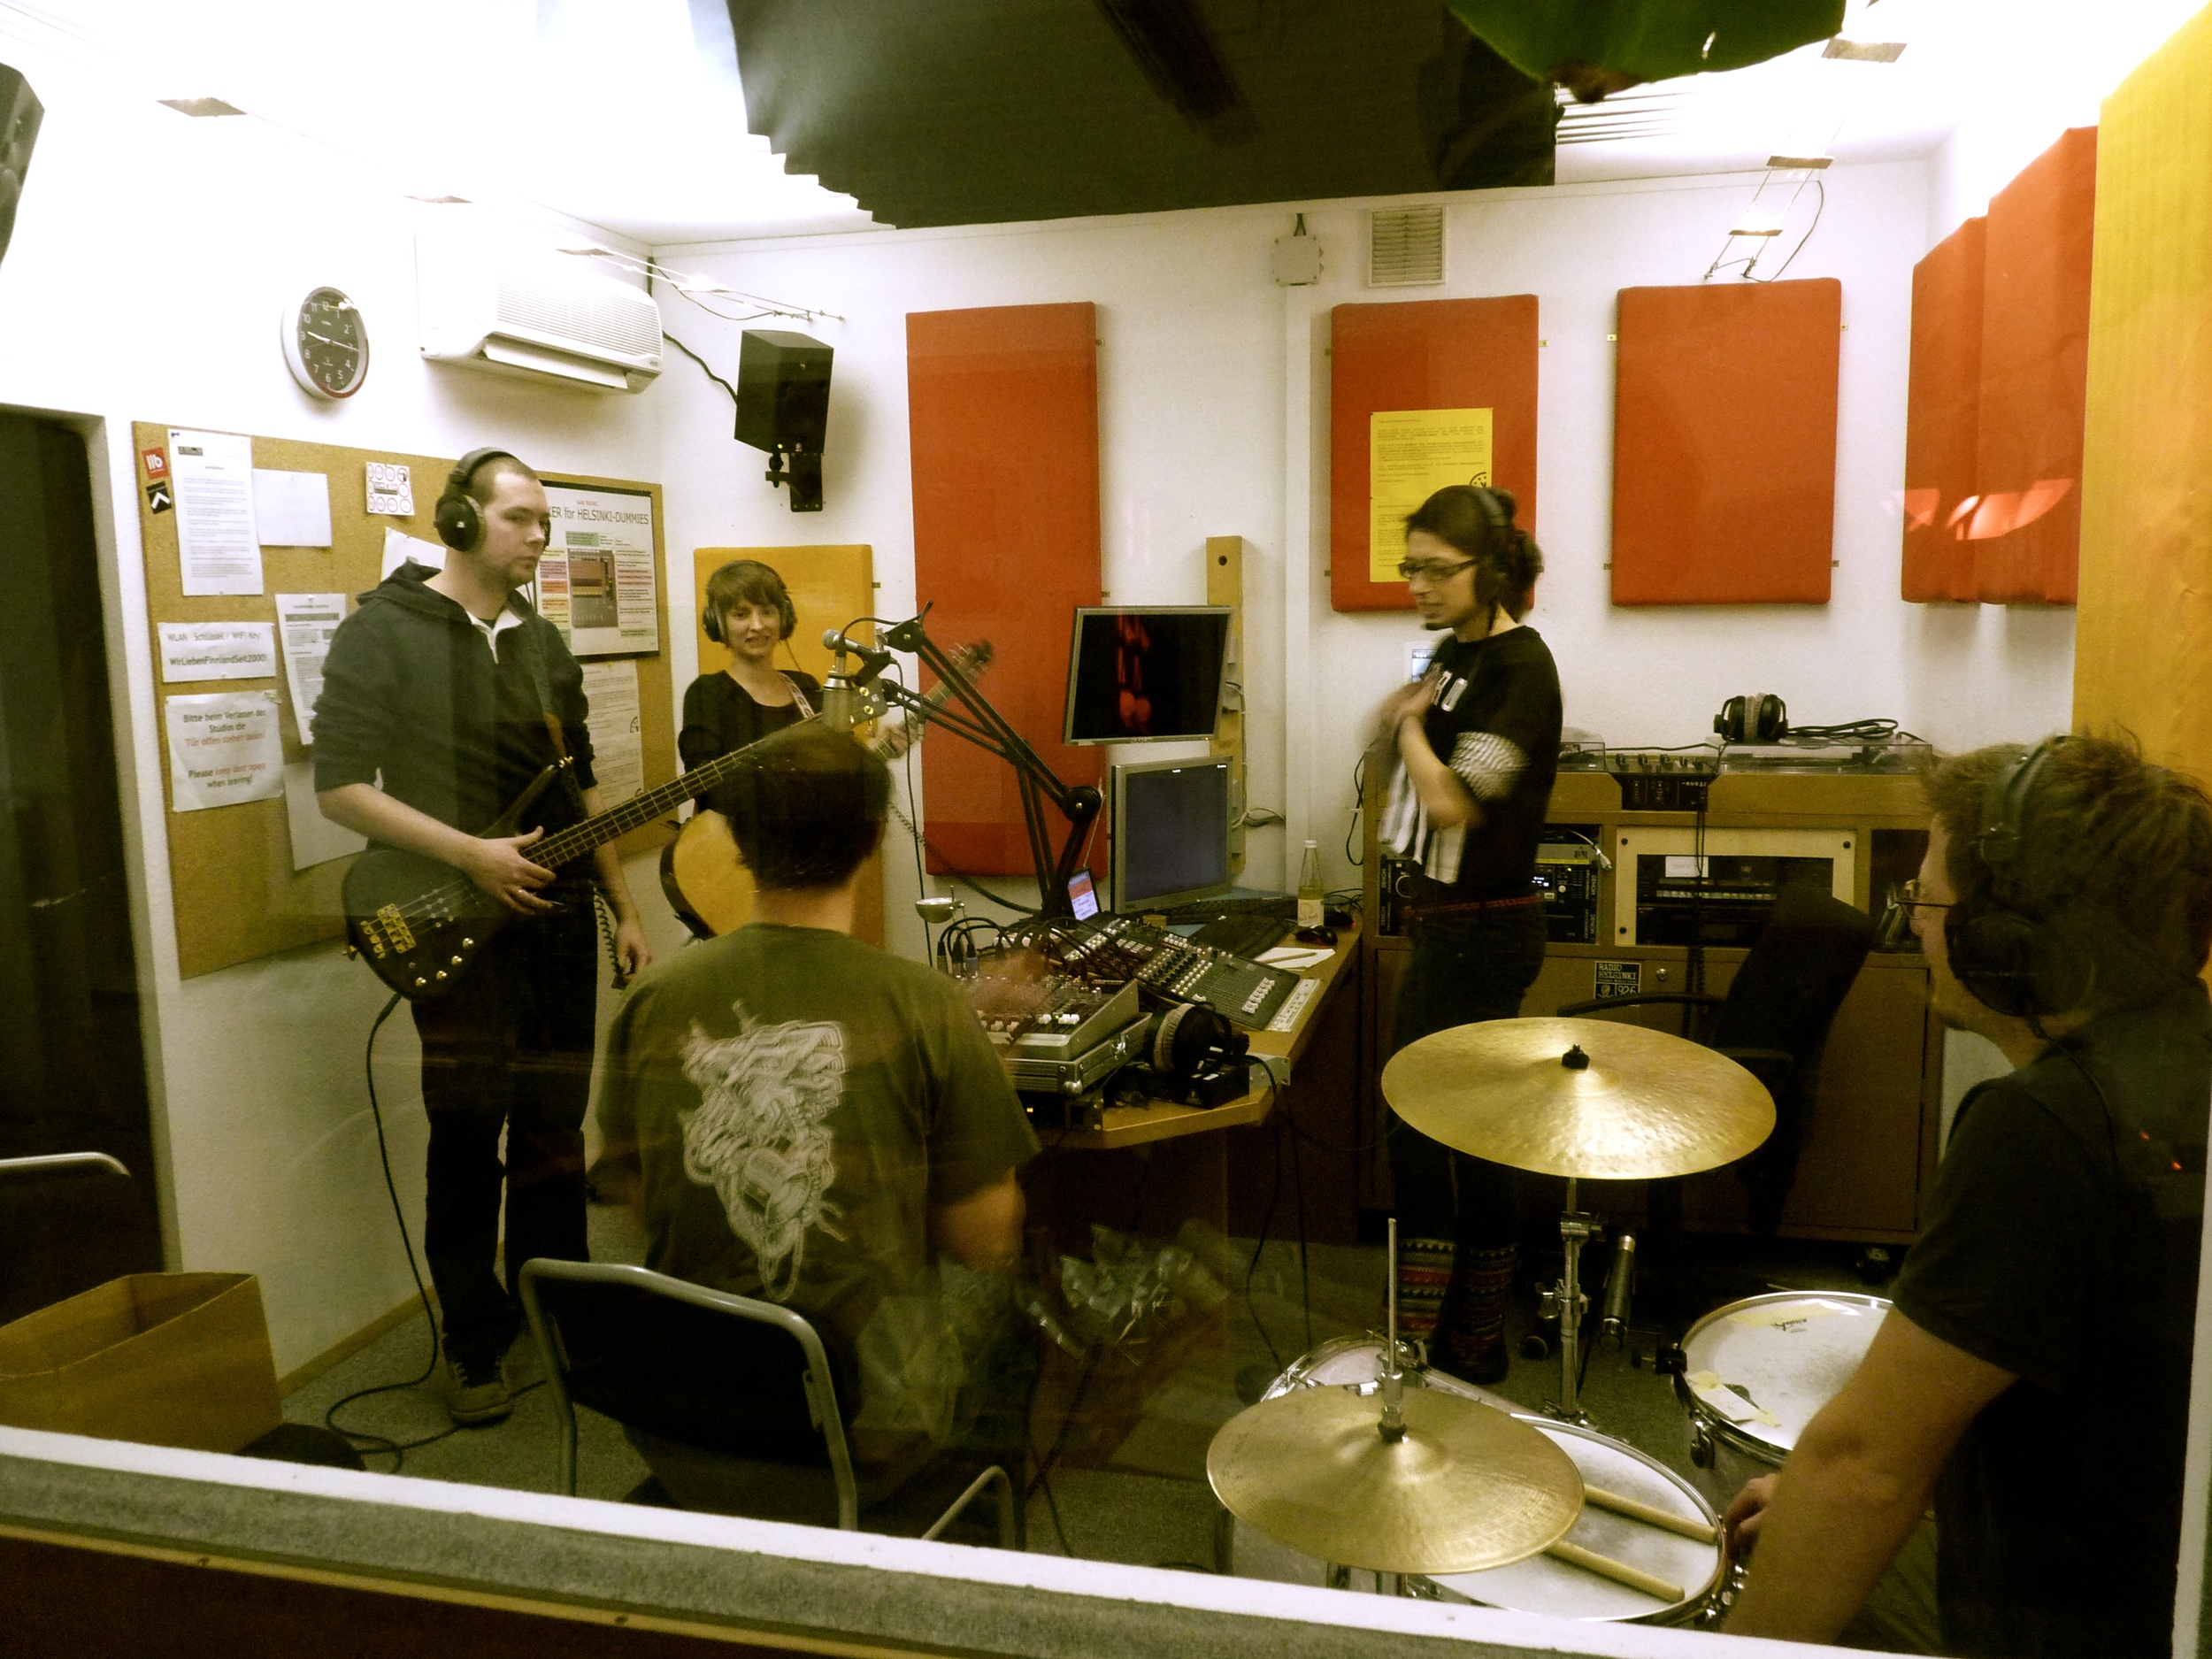 With 5 people, the studio is pretty crowded